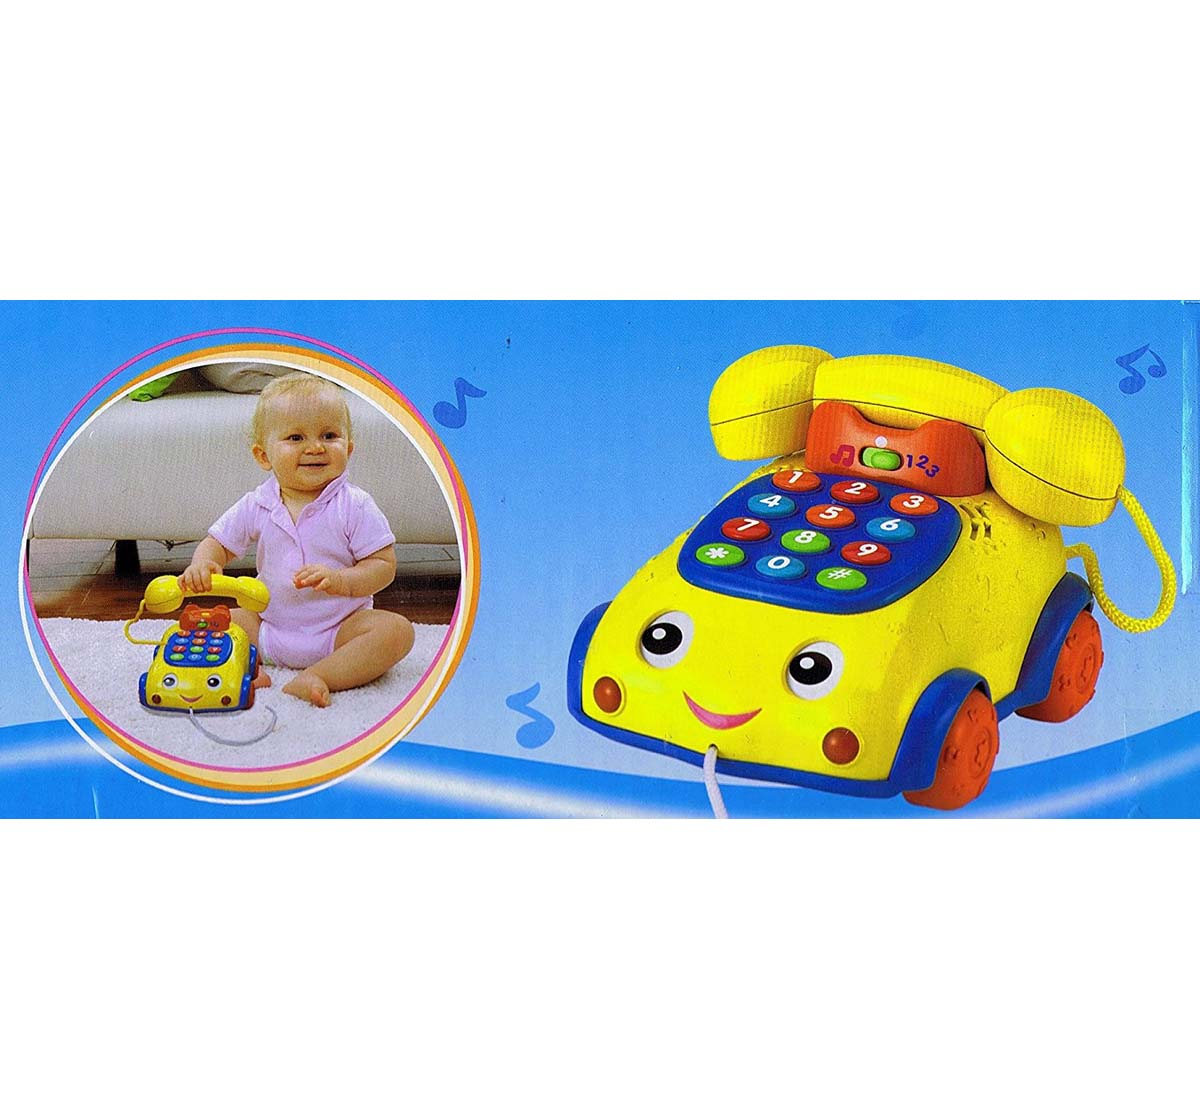 WinFun | Winfun Talk 'N Pull Phone Early Learner Toys for Kids age 24M+